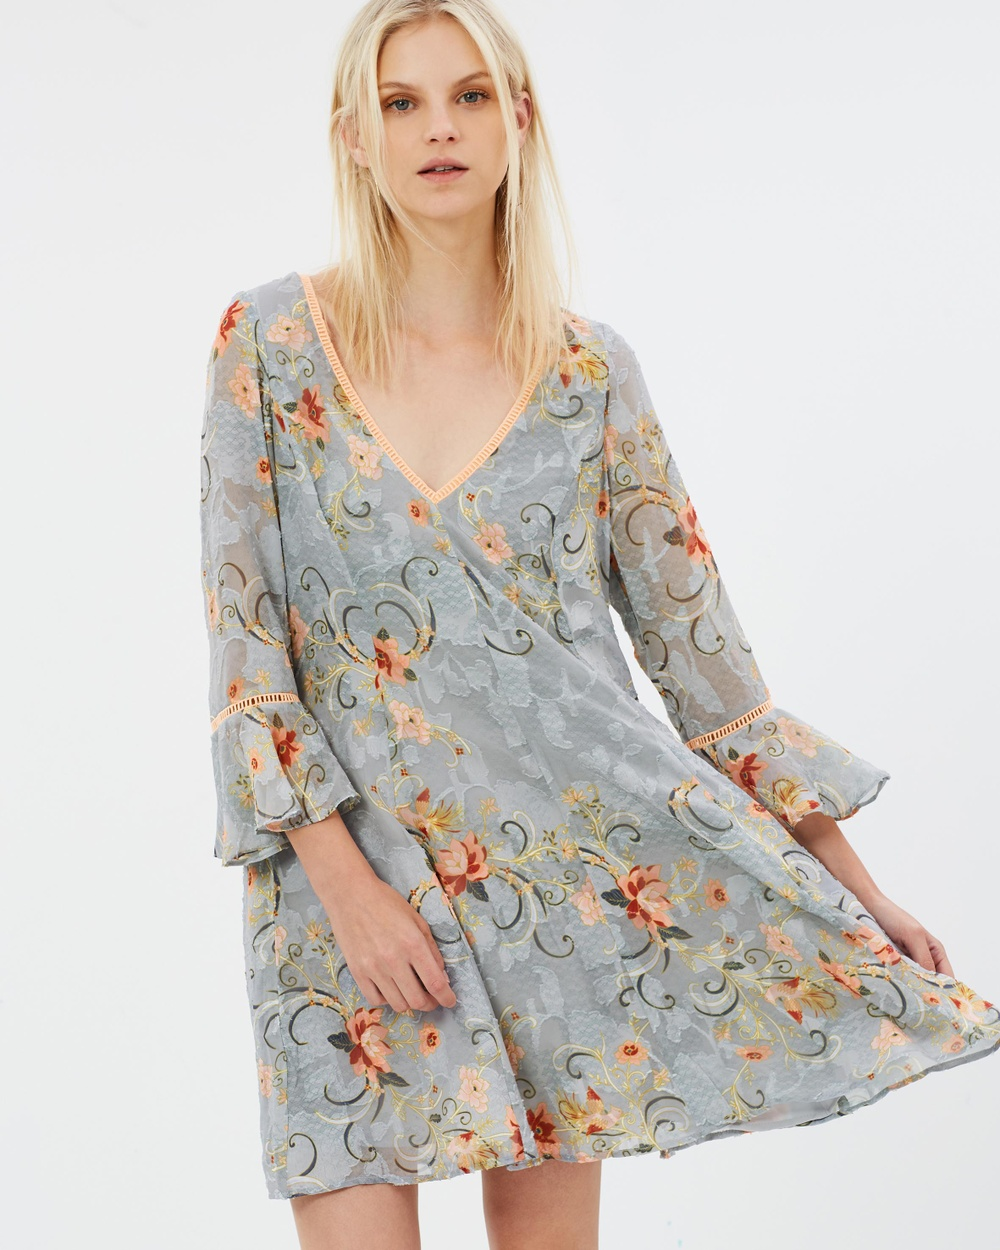 We Are Kindred Esme Frill Sleeve Dress Printed Dresses Sky Oriental Esme Frill Sleeve Dress